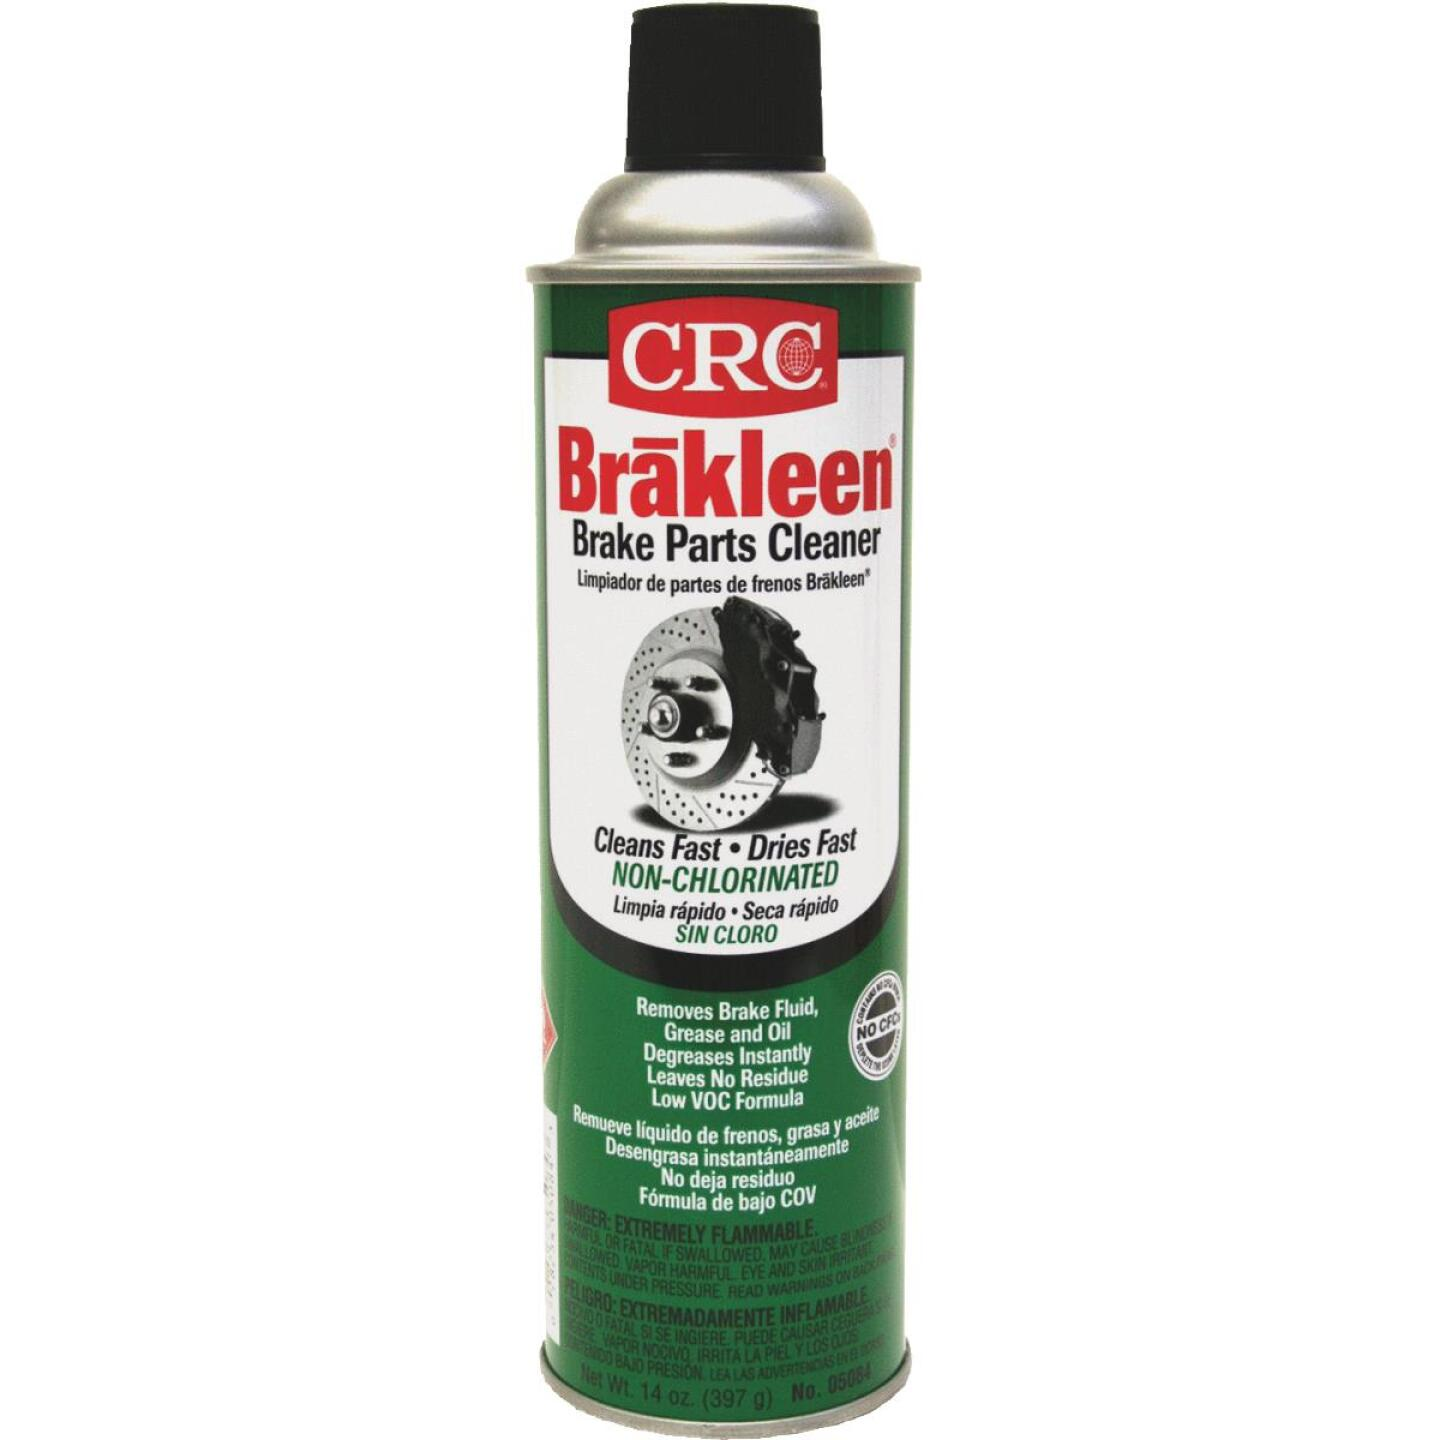 Crc Brakleen Nonchlorinated Aerosol 15 Oz Brake Cleaner Image 1